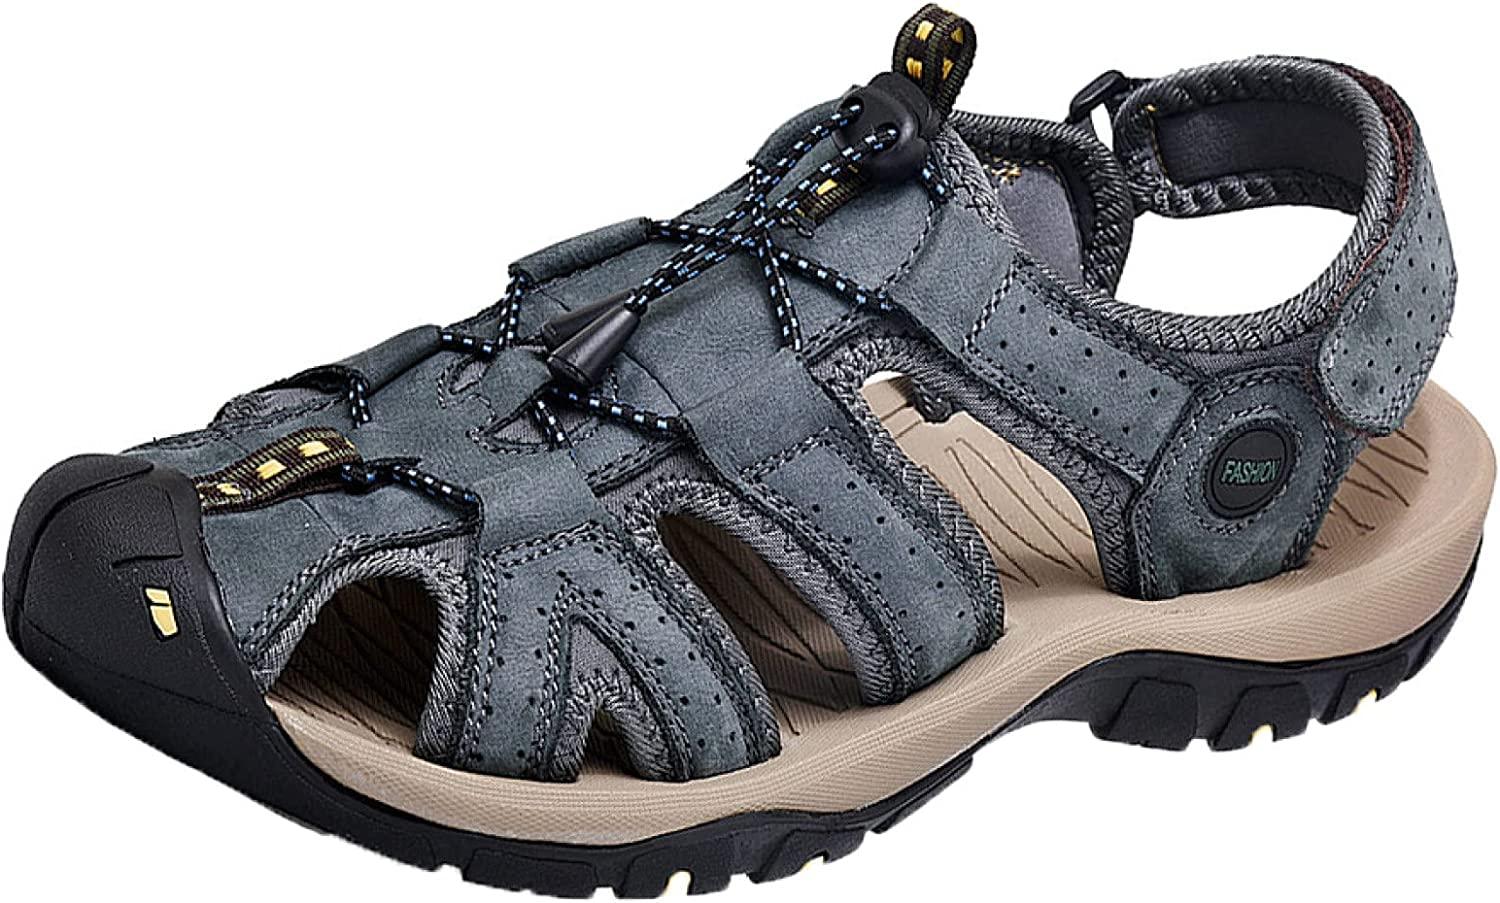 Mens Sandal Tucson Mall Summer Regular store Sport Leather Indoor Outdoor and Comfort for